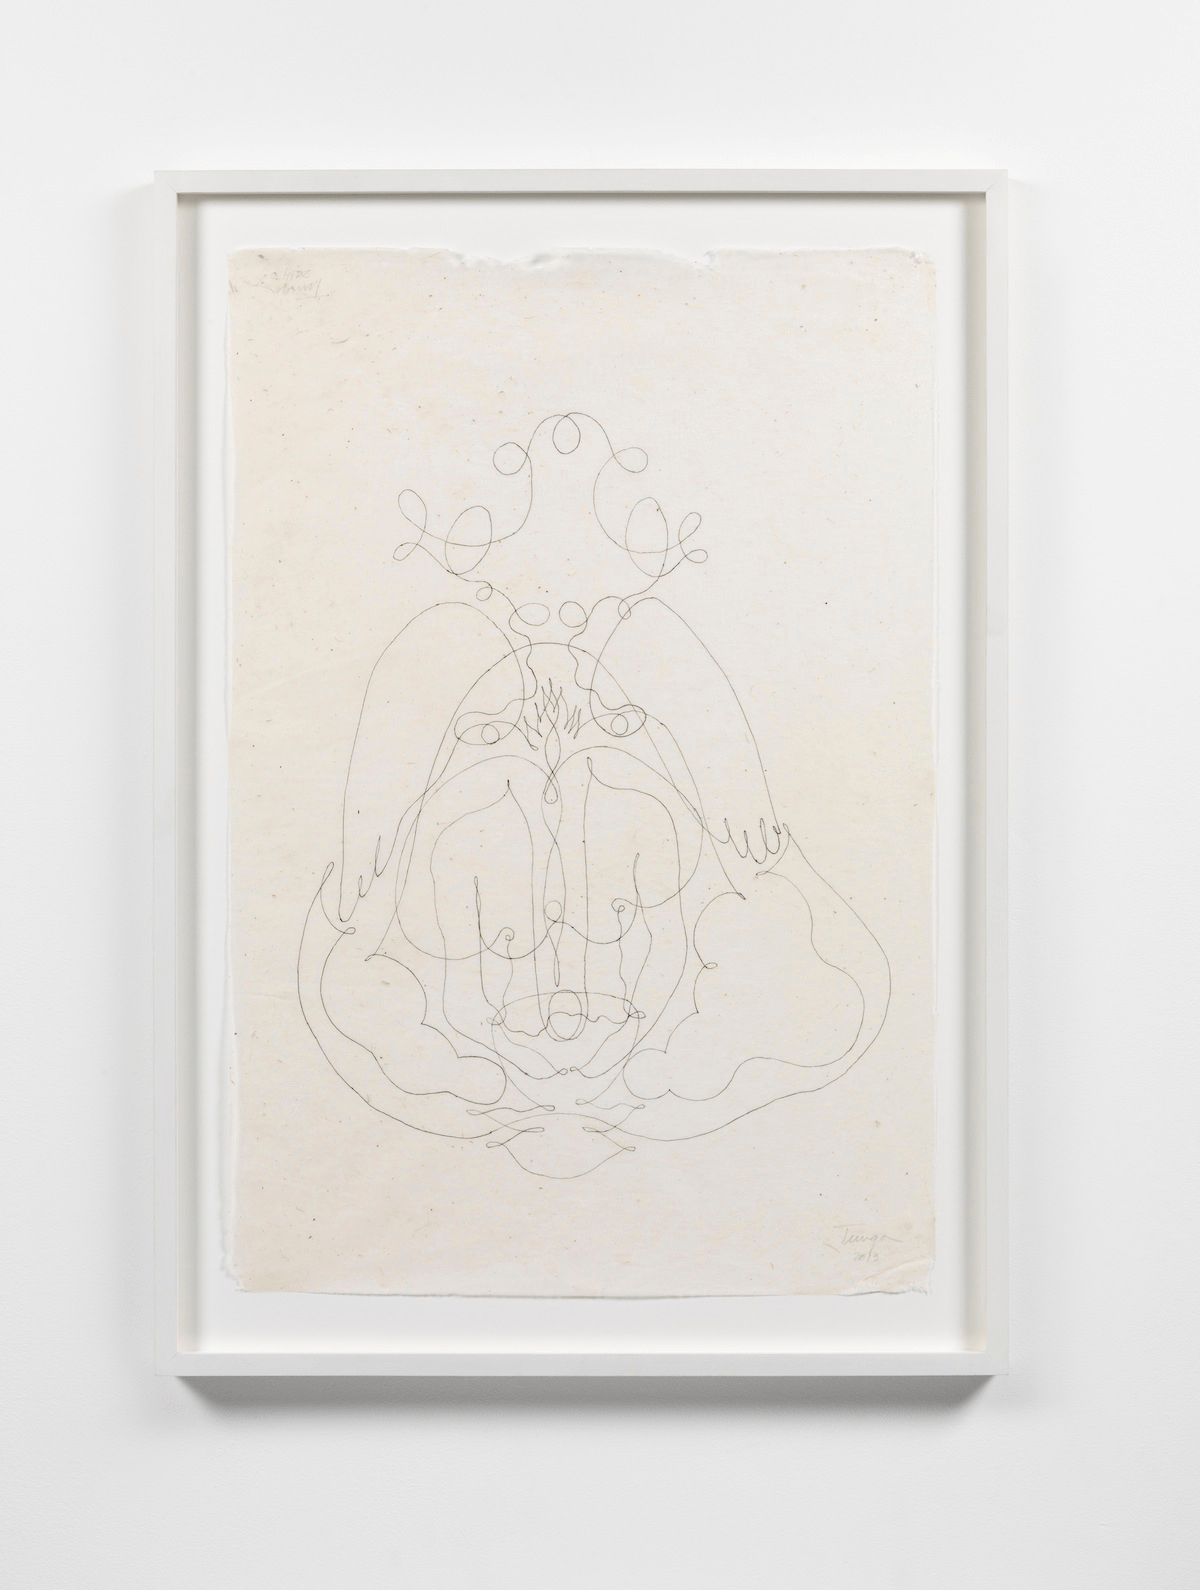 Untitled. 2014. Ink on Himalayan handmade paper. 75 x 50 cm (unframed), 61.5 x 87 x 4.2 cm (framed)